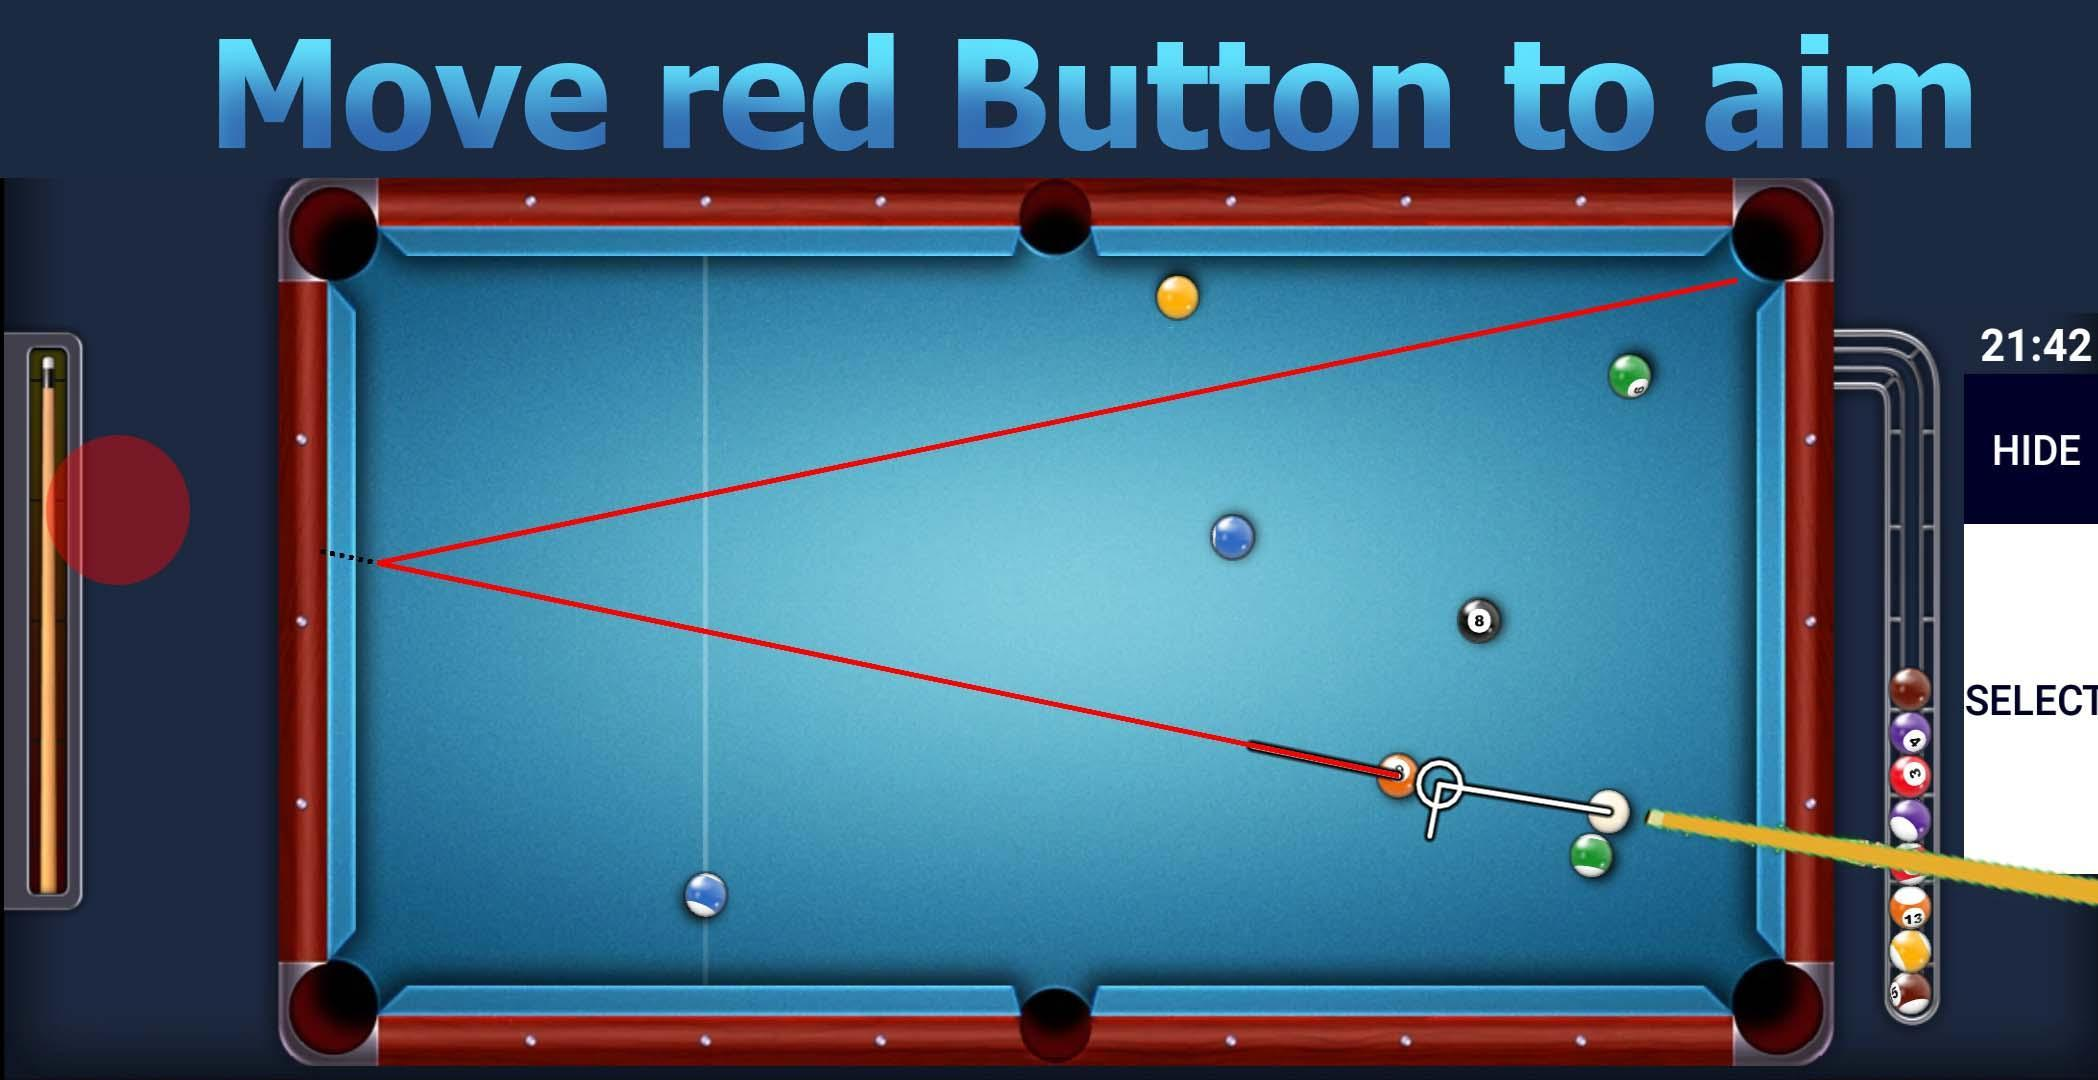 8 Ball Pool Cheats Android 2018 8 ball pool trainer for android - apk download